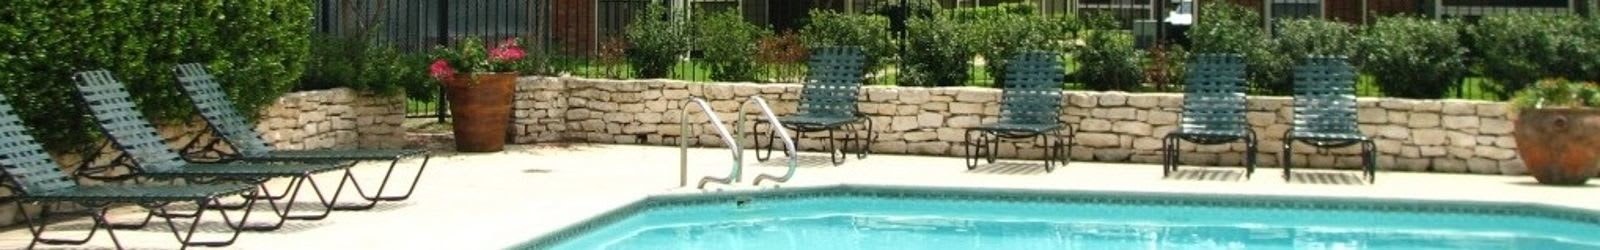 Contact Westchase Apartments about luxury apartment community living in San Antonio, TX